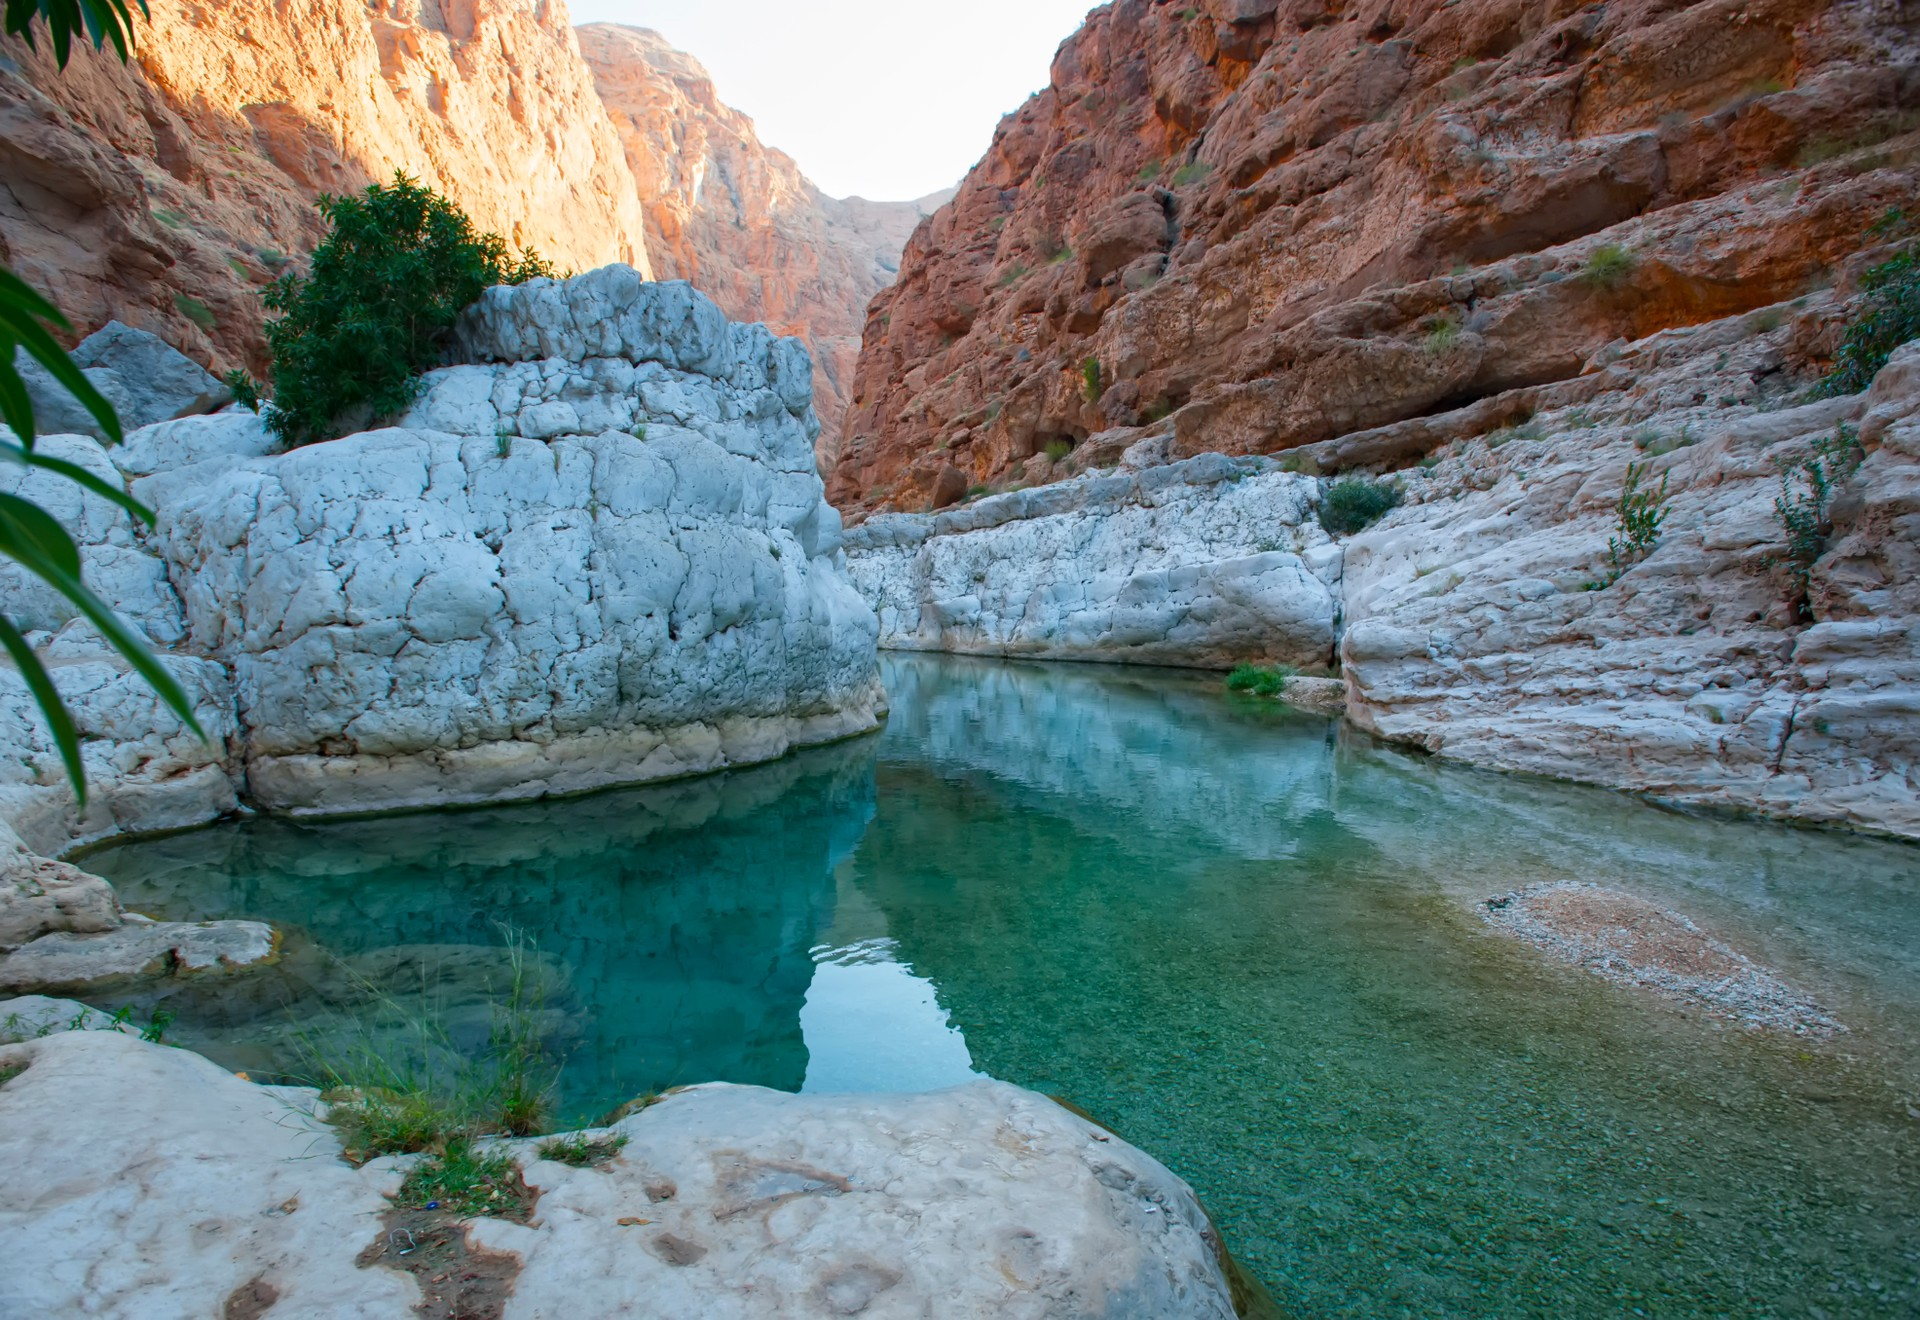 The best places to go wild swimming: Wadi Bani Khalid